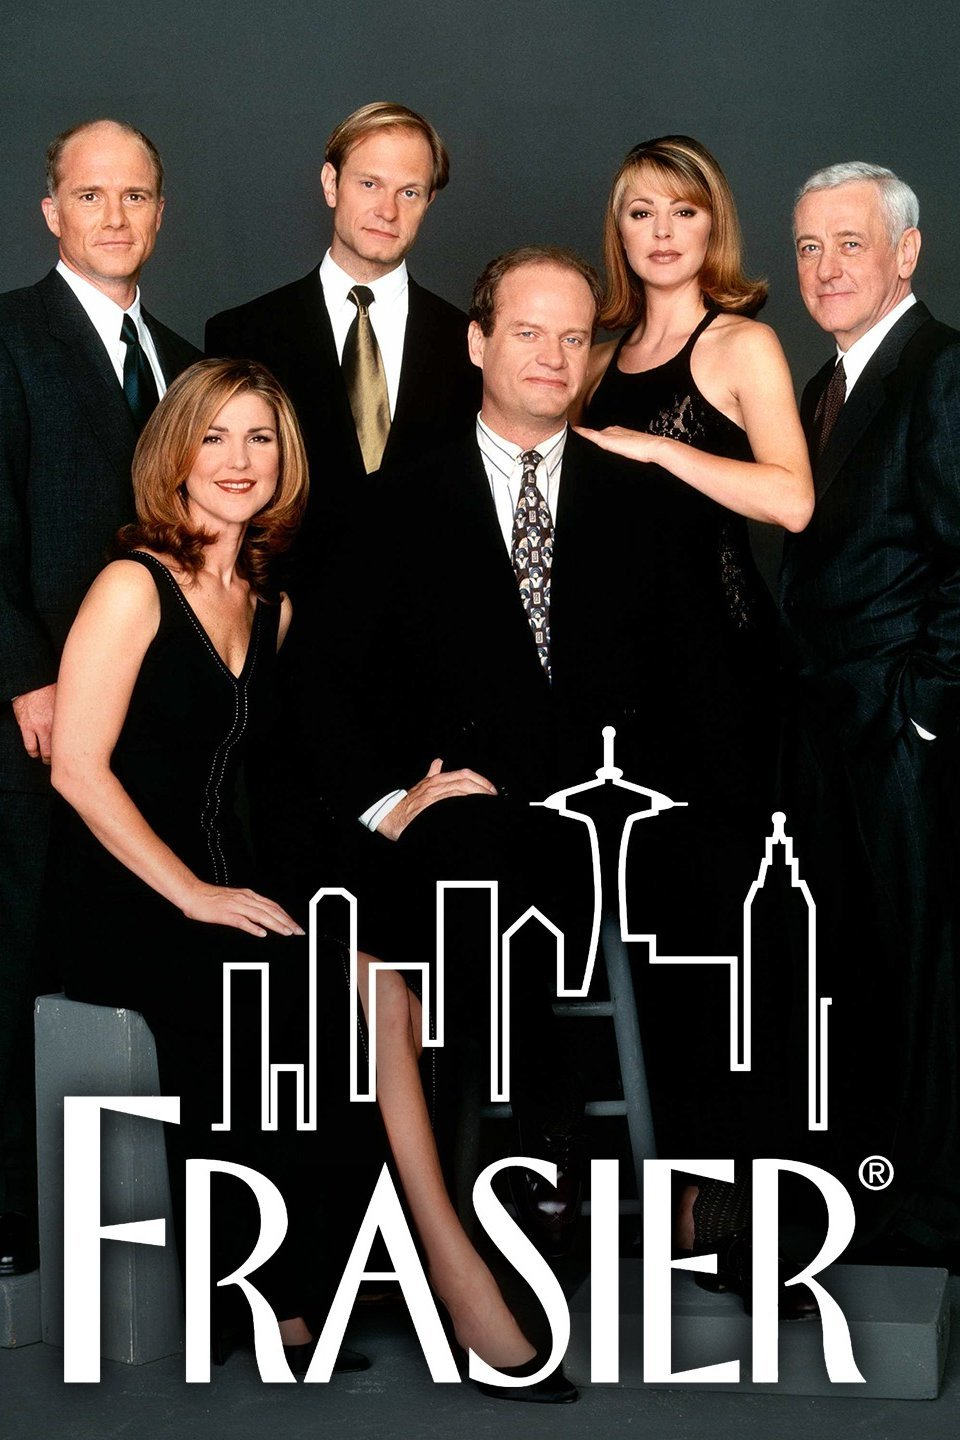 Frasier - You should do yourself a favor and spend some time on Netflix revisiting Frasier. The story of a middle-aged radio host psychiatrist who lives with his elderly father, his father's physical therapist, and his brother who is in love with her. Frasier was special for several reasons. Rarely is a spin-off as successful as it's predecessor but in this case people tend to forget the show was a spin-off in the first place. Unfortunately, John Mahoney died earlier this year but I think Frasier making his return to the small screen after 14 years would be a great way to honor Martin Crane.